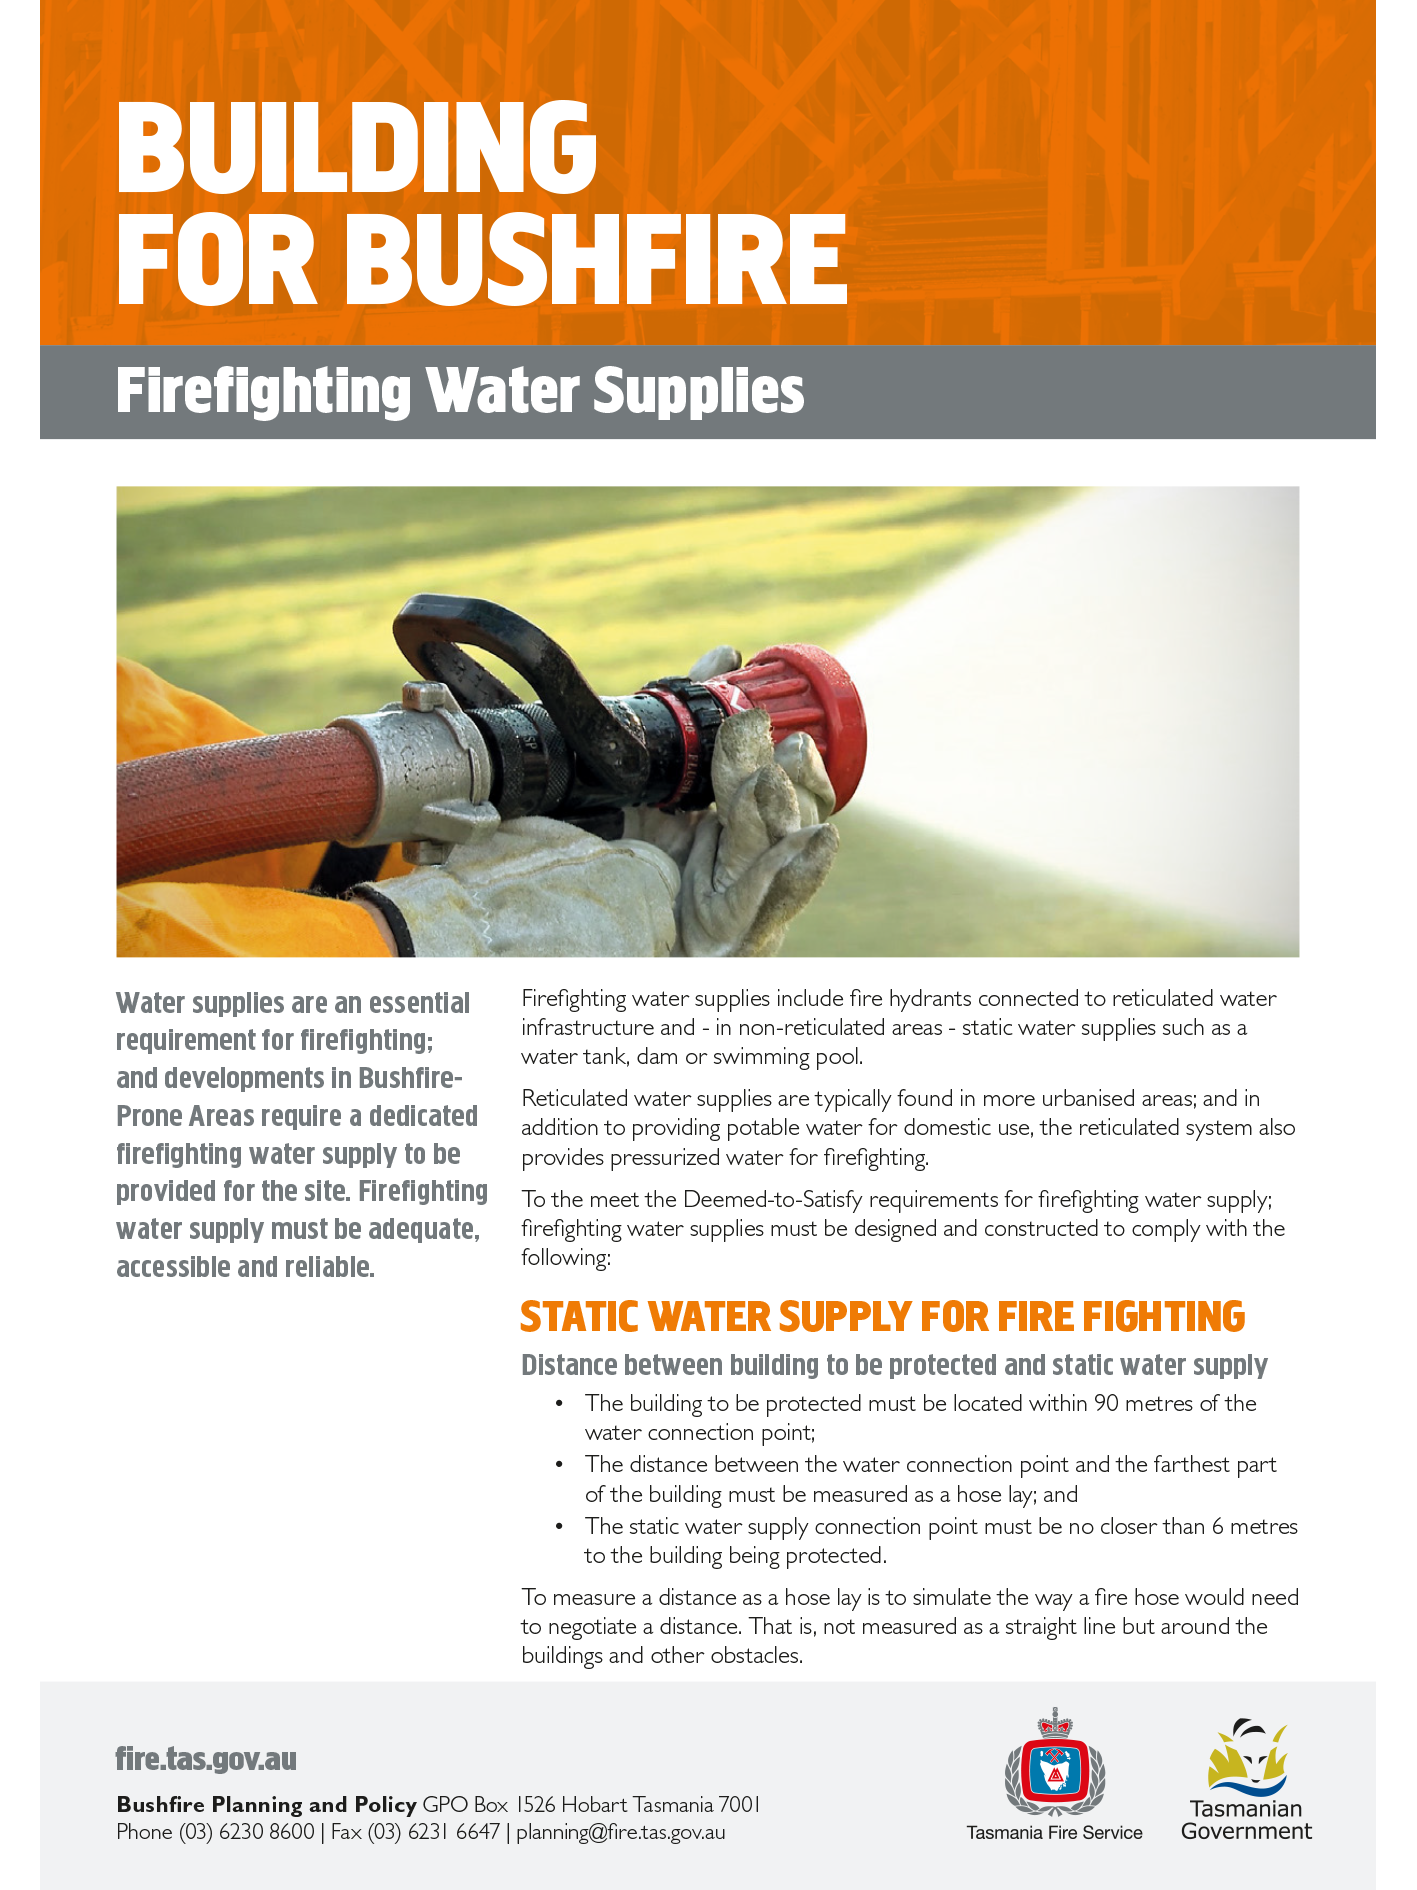 Building for Bushfire Firefighting Water Supplies